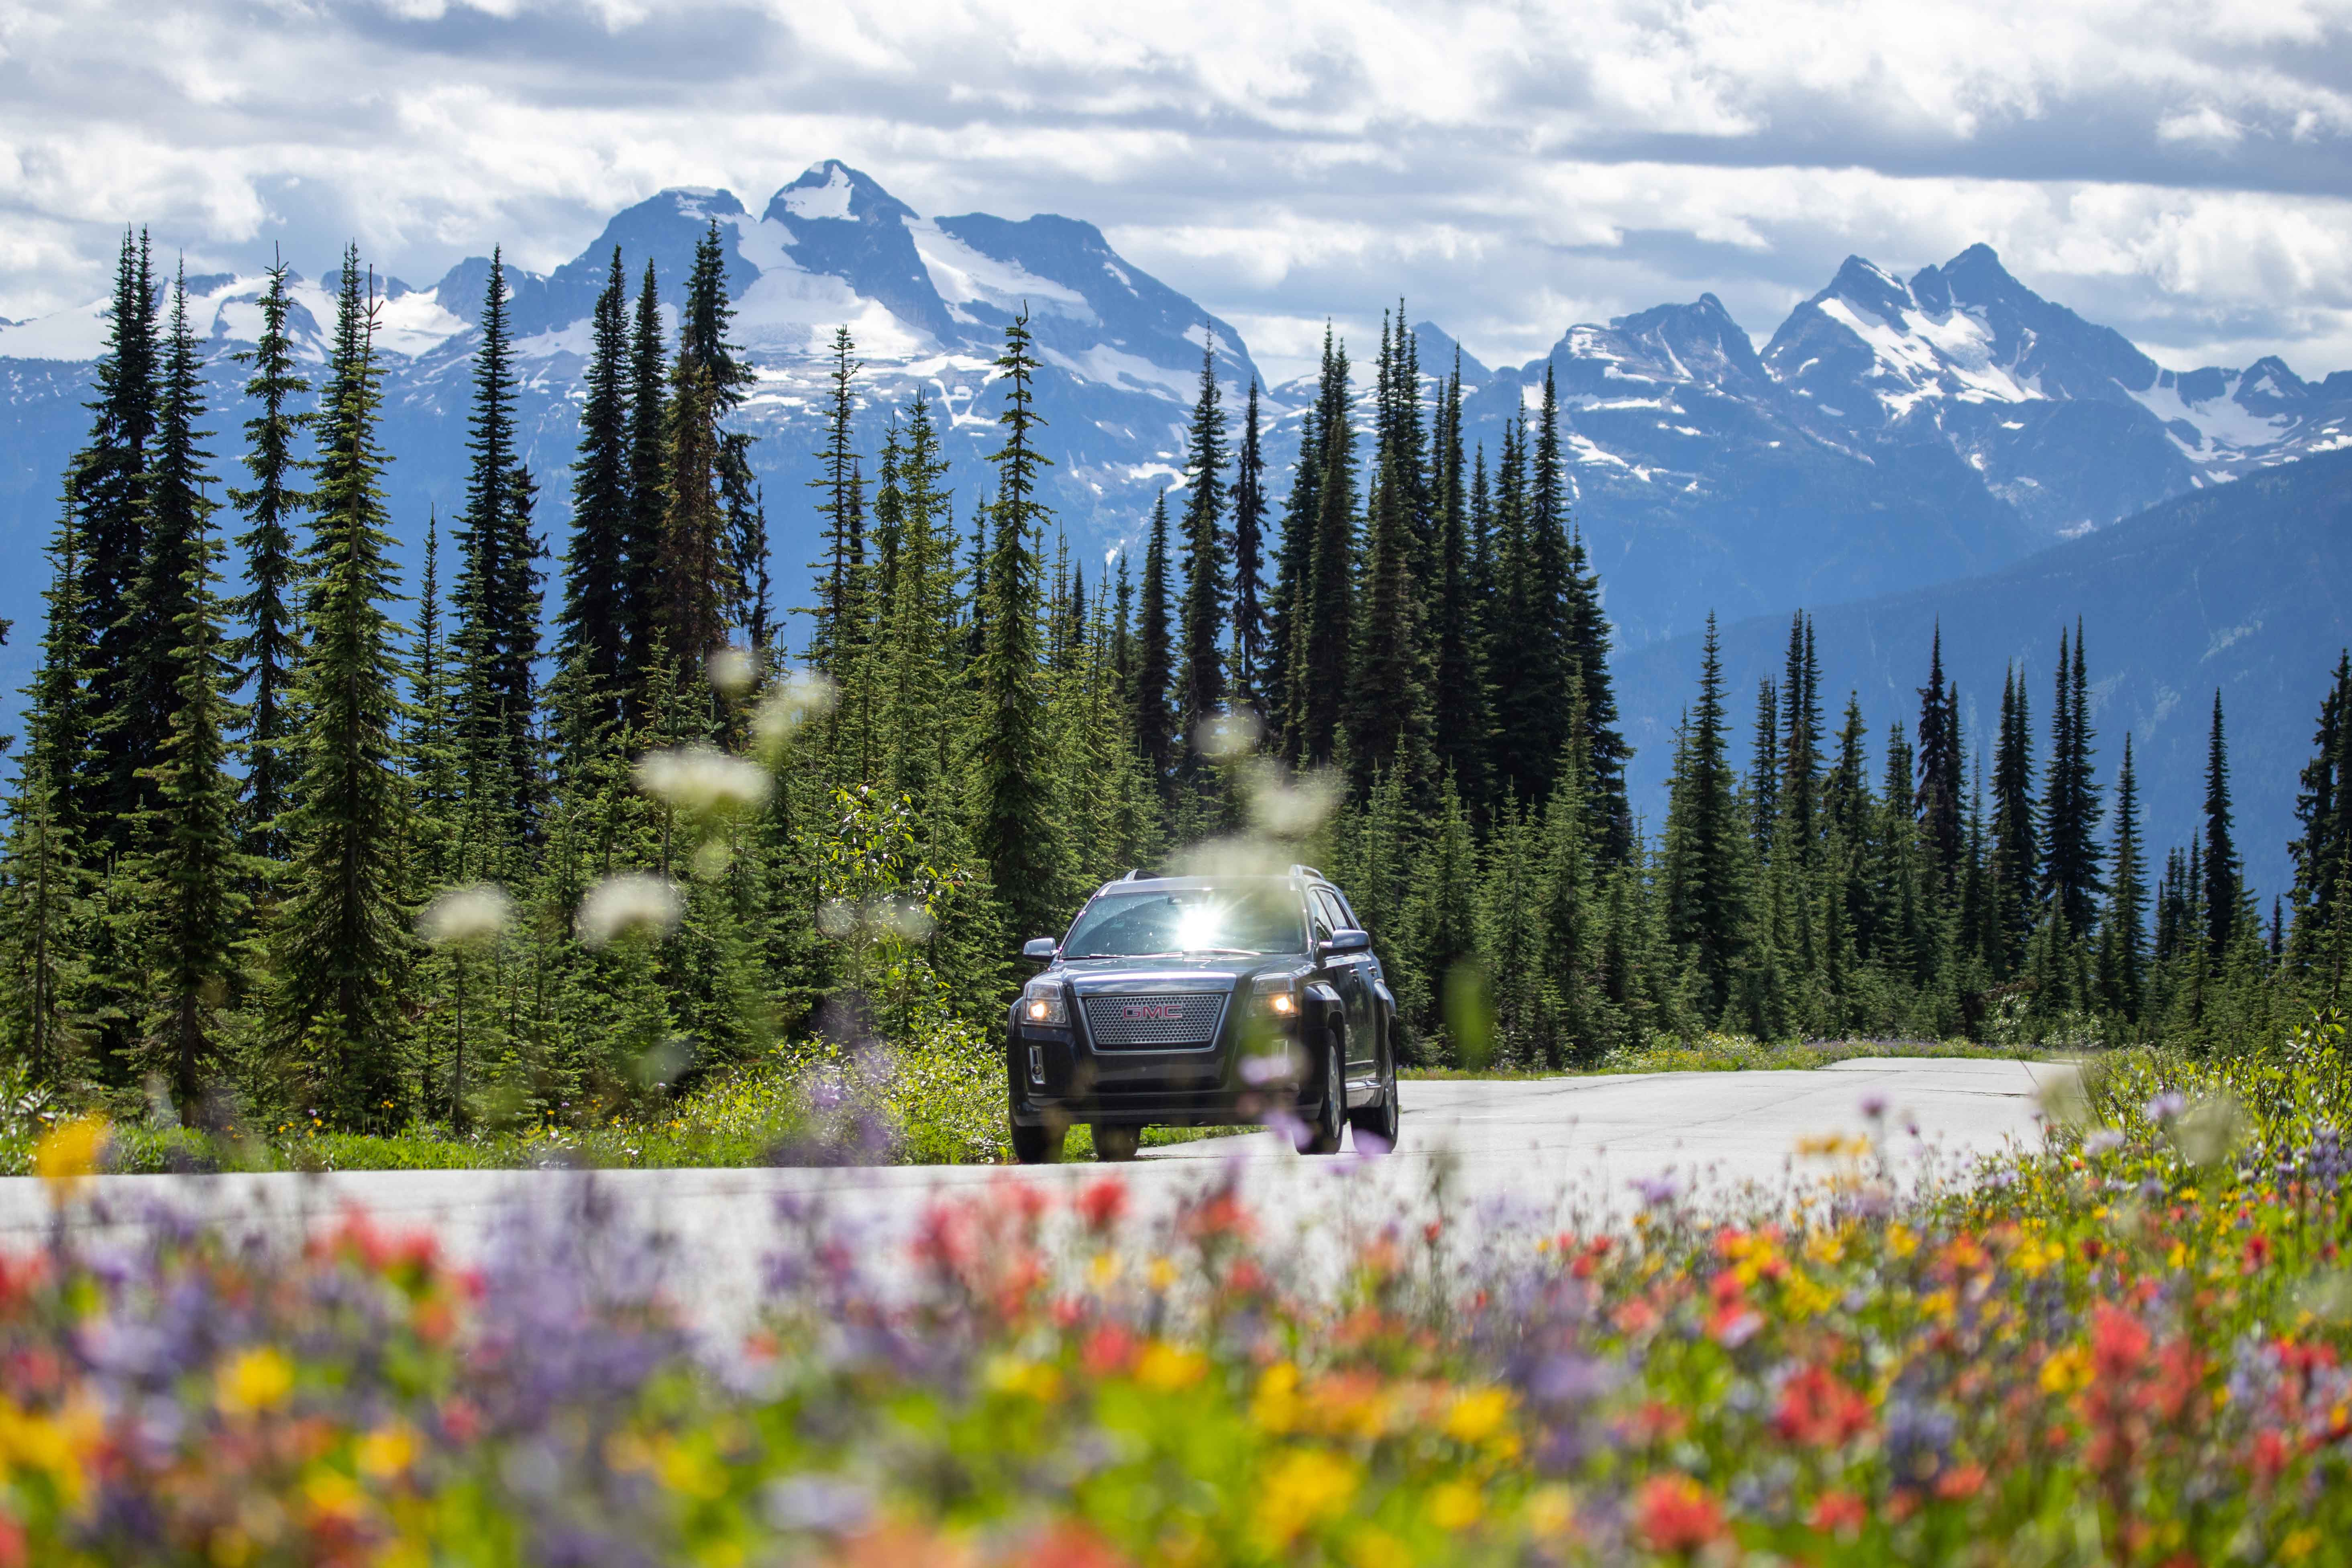 Get Into BC aims to mitigate barriers for visitors to travel along Highway 1.